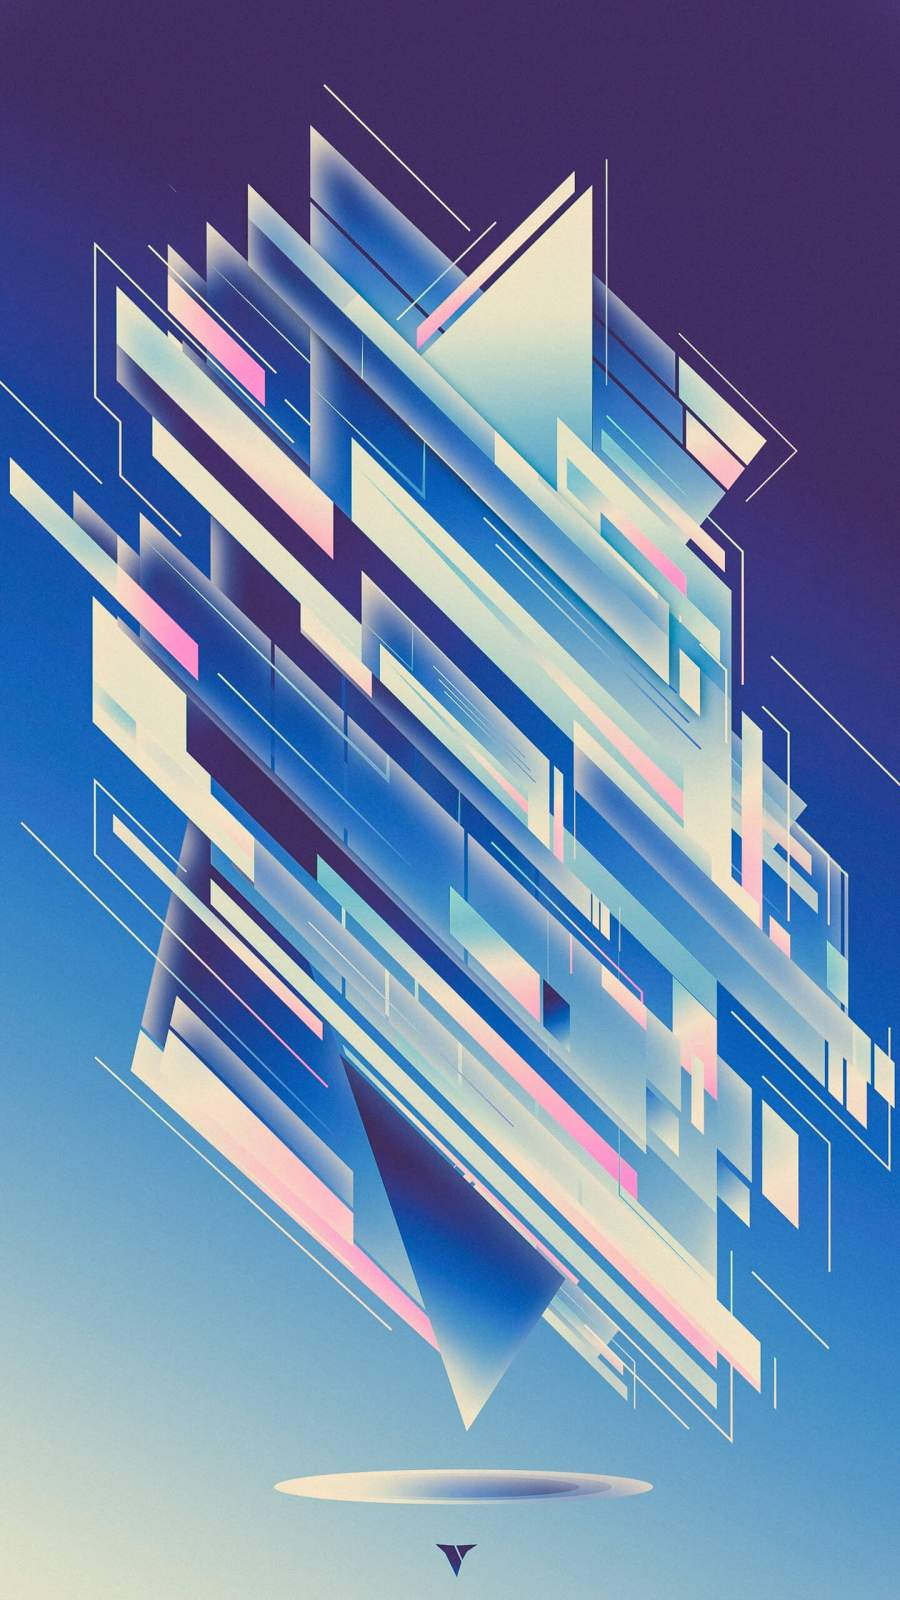 Abstract Design iPhone Wallpaper